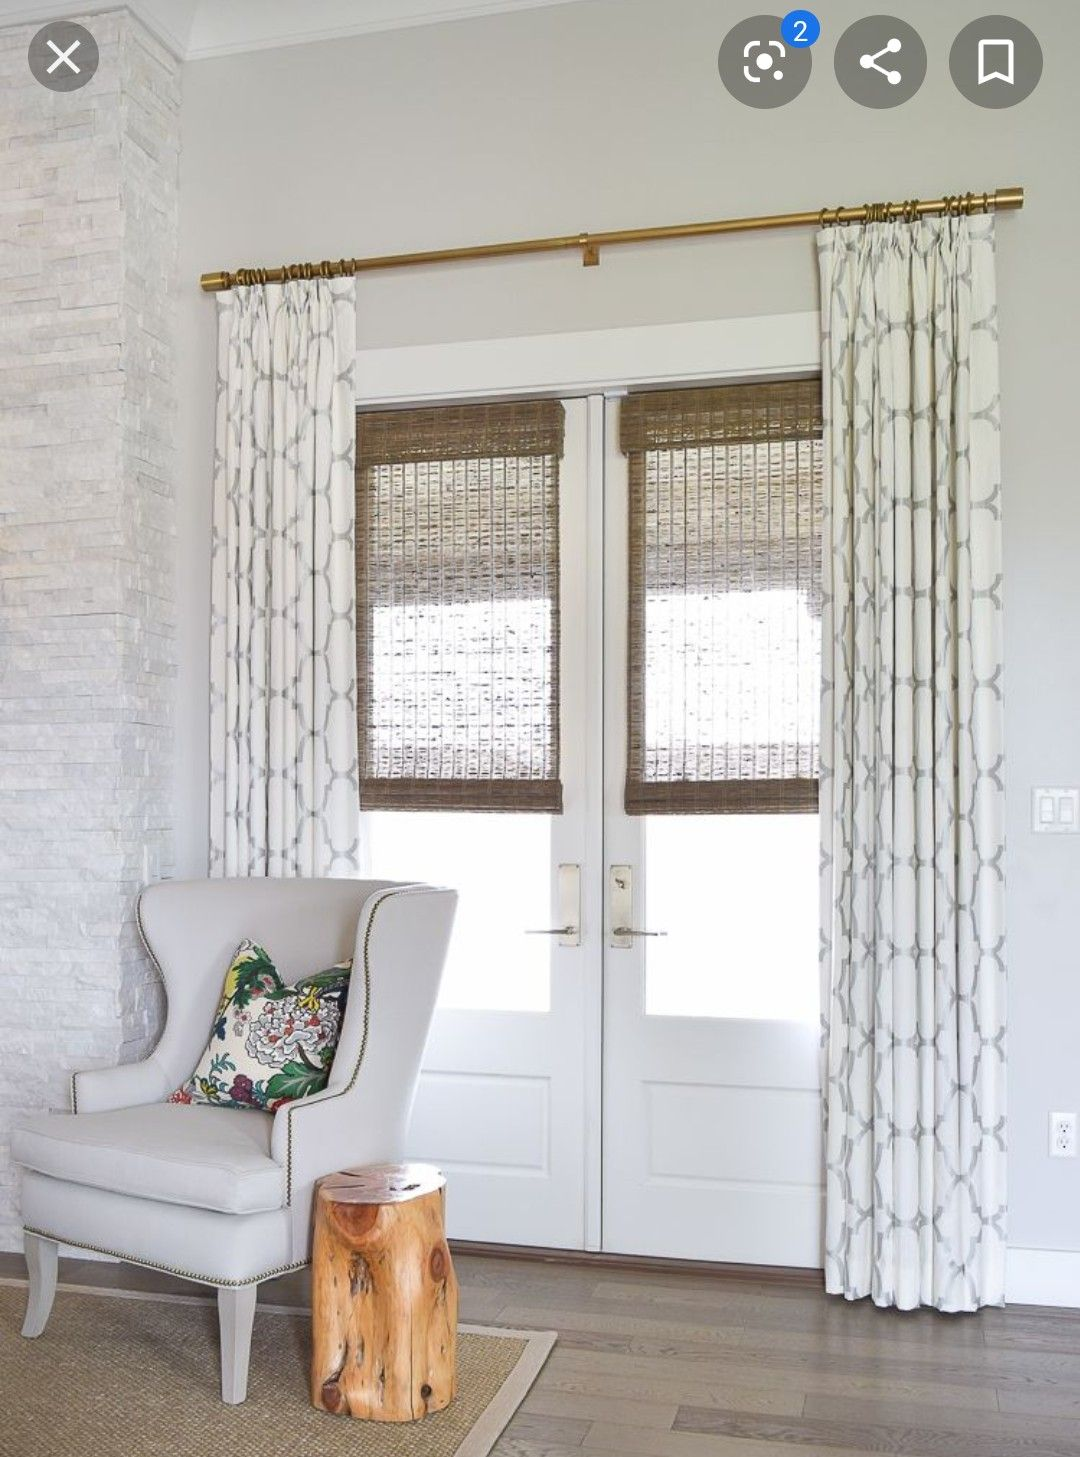 Pin By Lea On Glenmore Home Interior Ideas In 2020 Window Treatments Living Room Curtains Curtains Living Room Popular Window Treatments